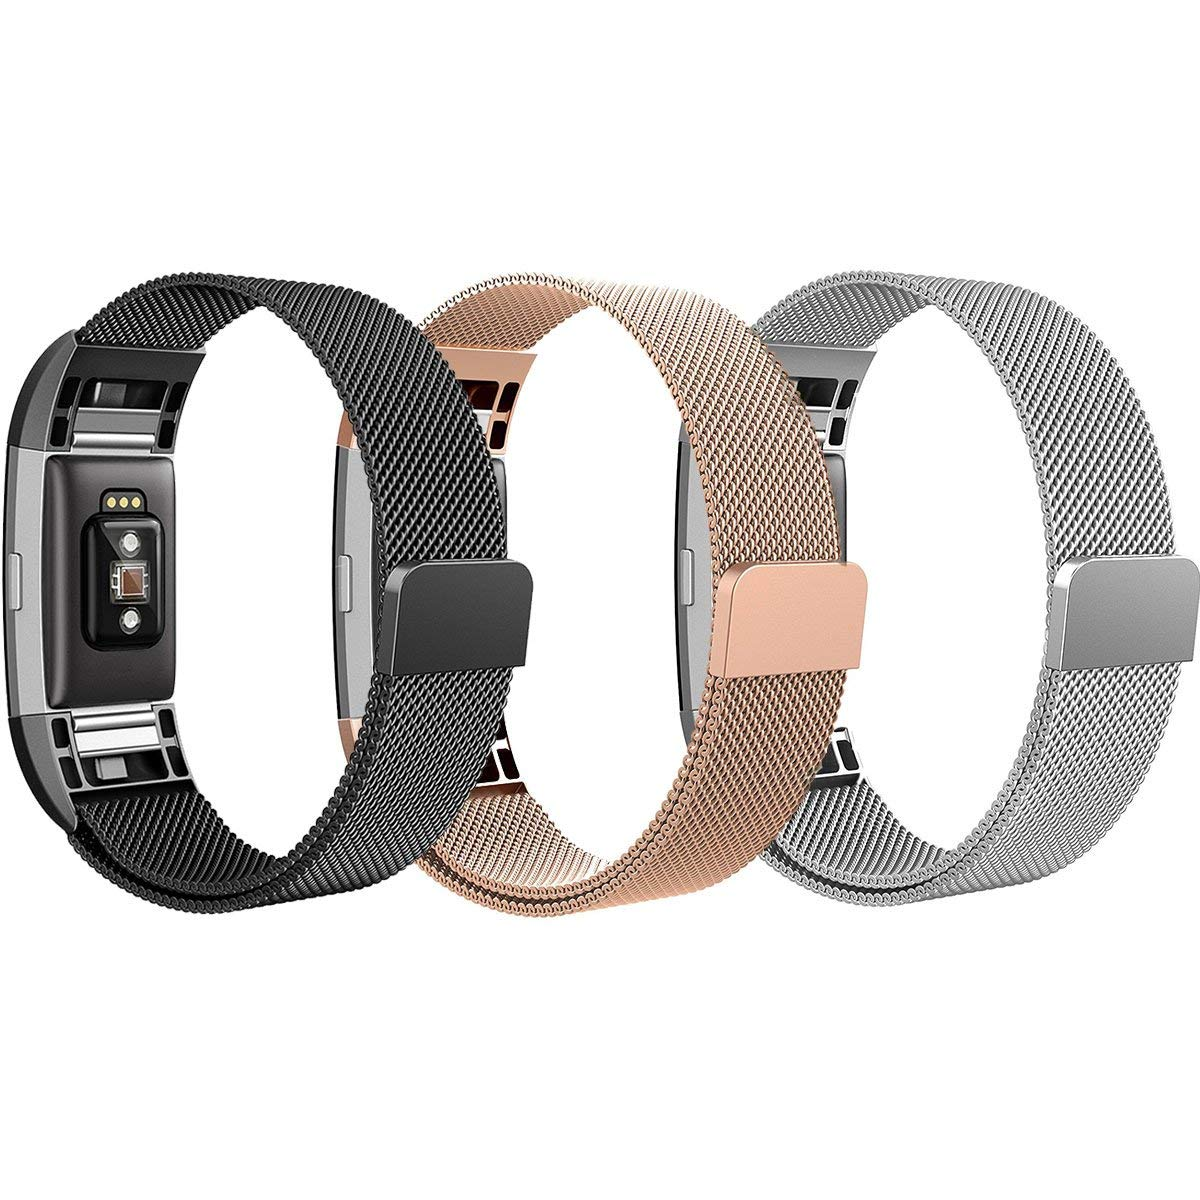 Bands for Fitbit Charge 2, SailFar 3 Pack Milanese Loop Stainless Steel Metal Bracelet Replacement Accessories Small & Large Band with Mesh Magnetic Clasp for Fitbit Charge 2,Men/Women,Large